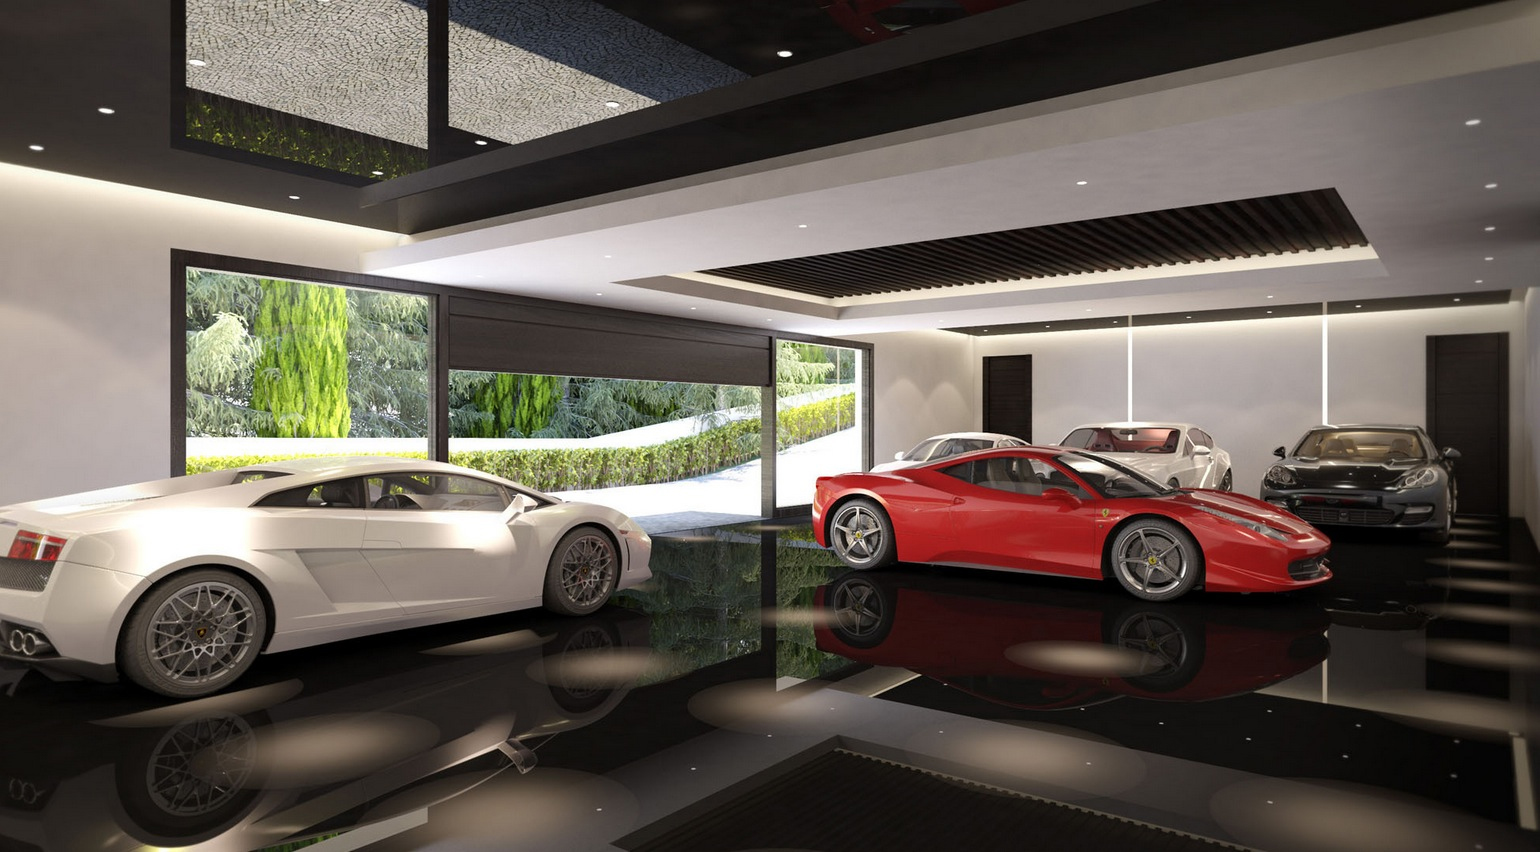 Private Park Garage : Luxurious bedroom spanish home with indoor outdoor pools